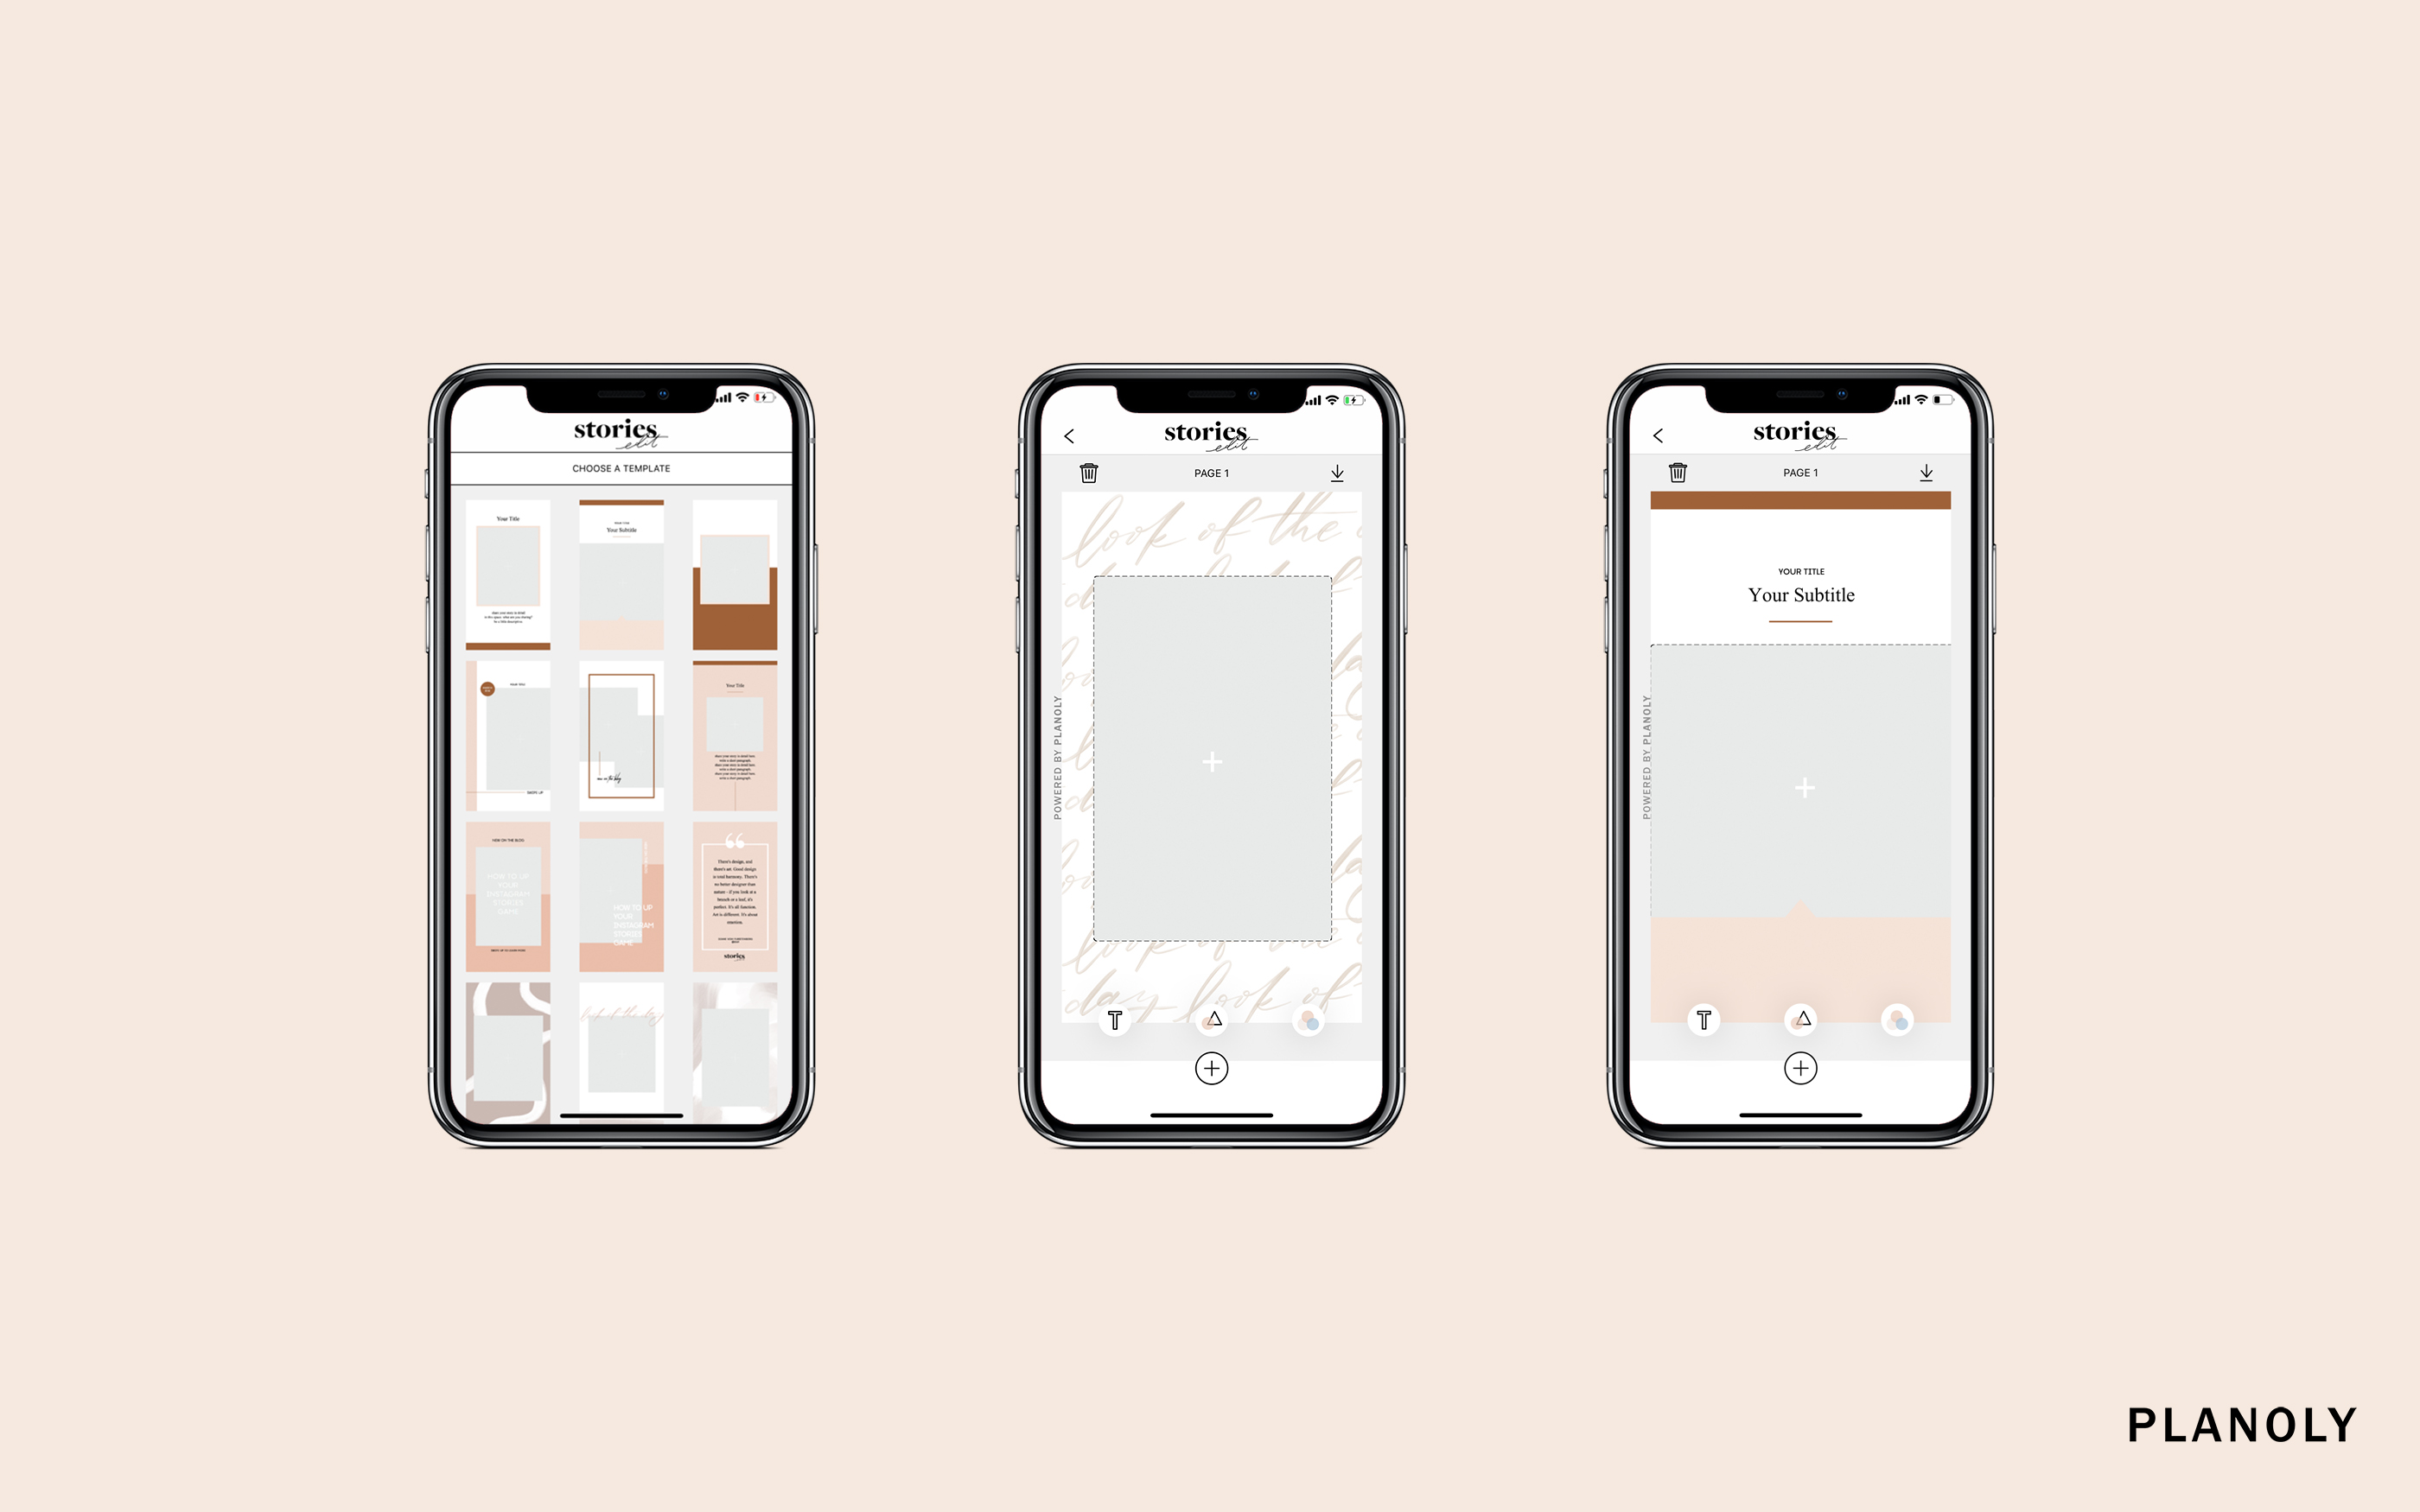 Introducing StoriesEdit: A Stories Design App - Planoly